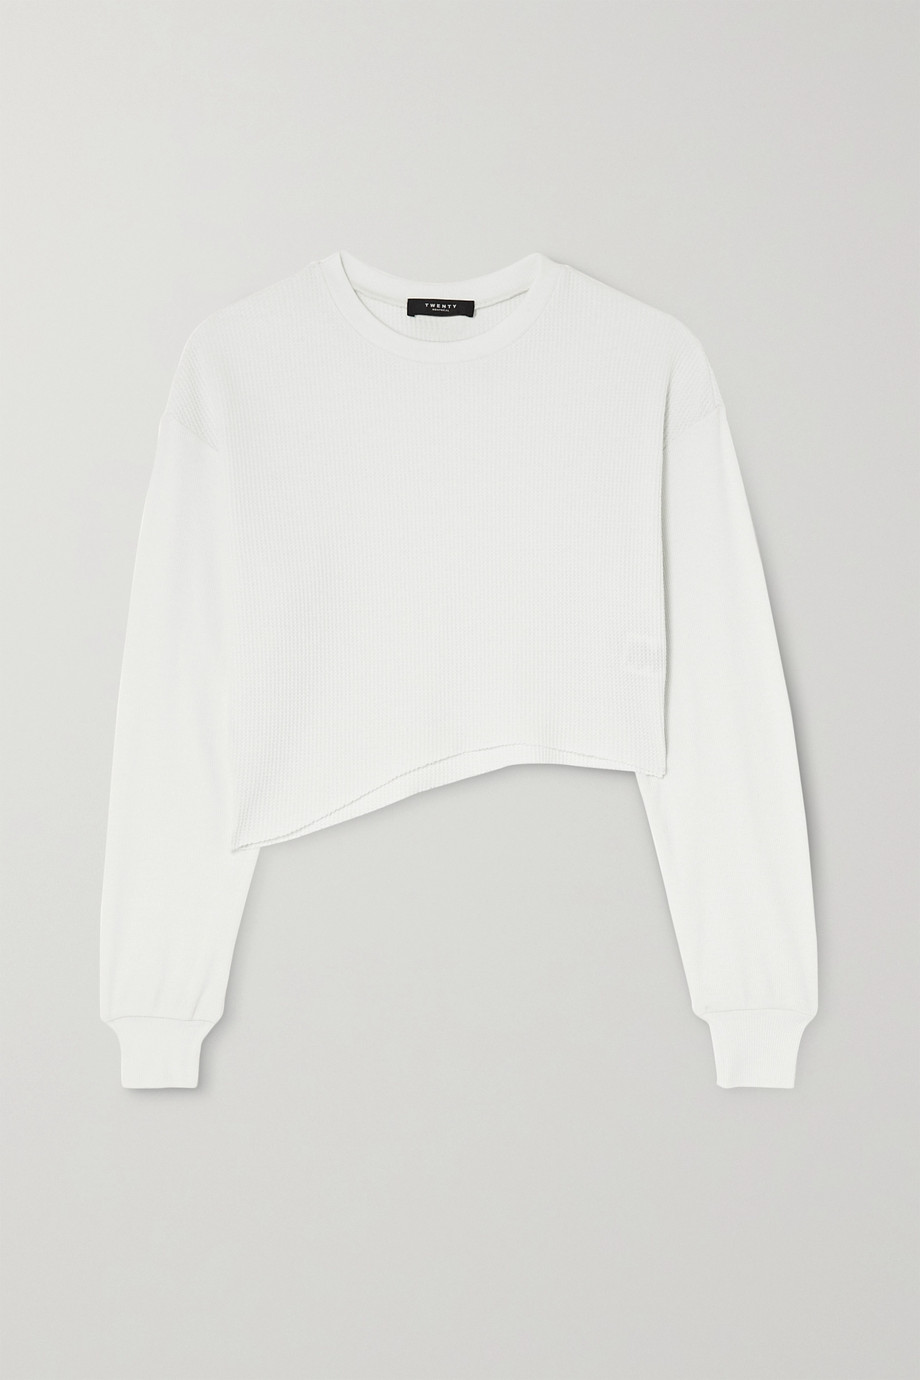 TWENTY Montréal Everest Thermal cropped asymmetric waffle-knit jersey top